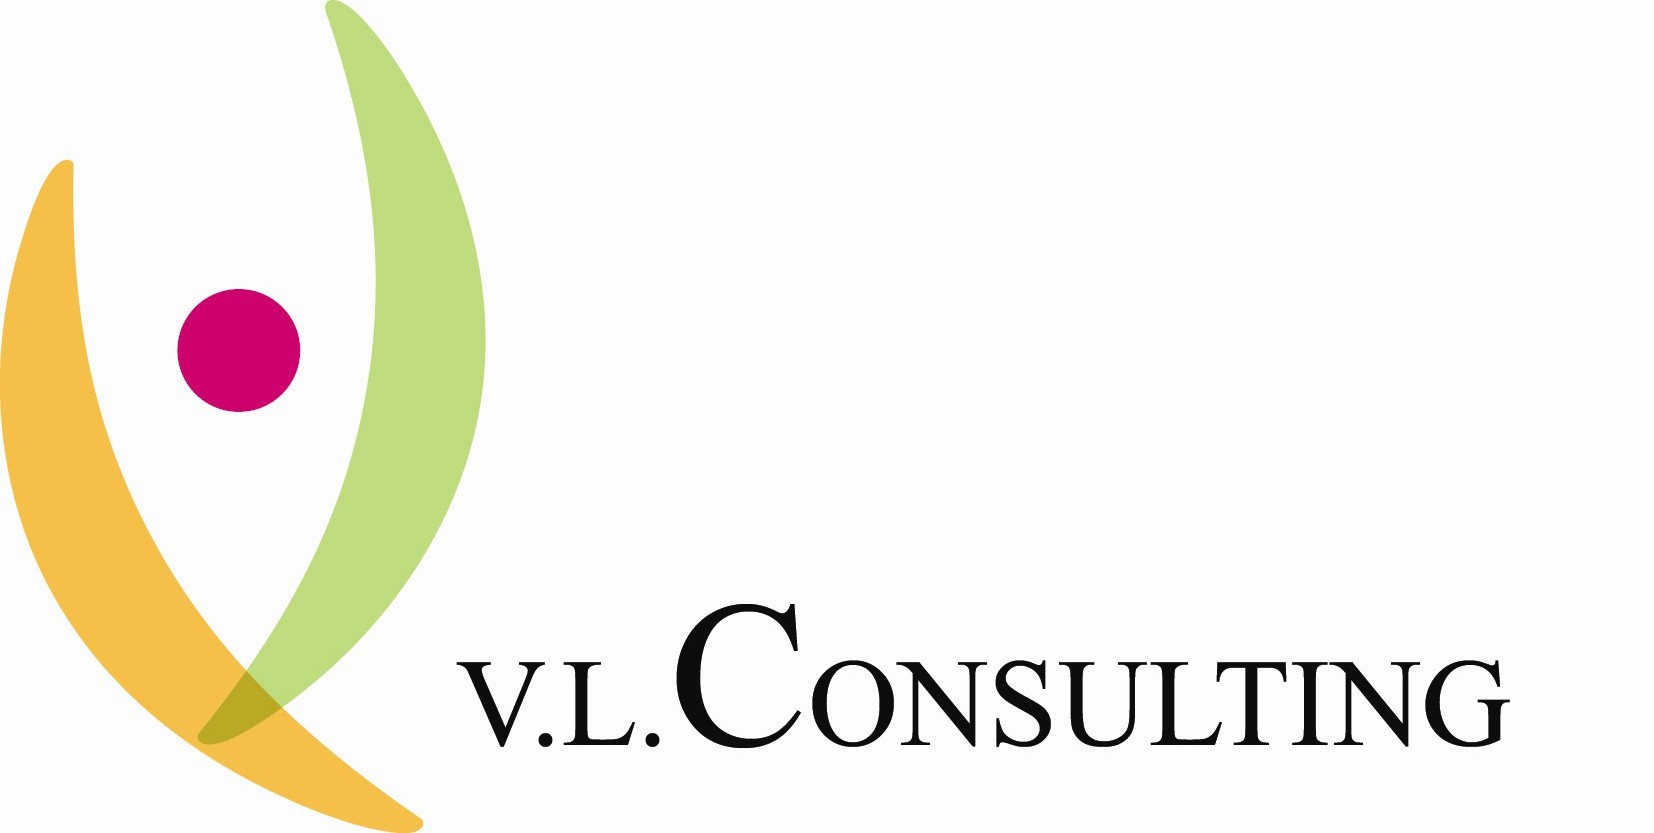 VL CONSULTING